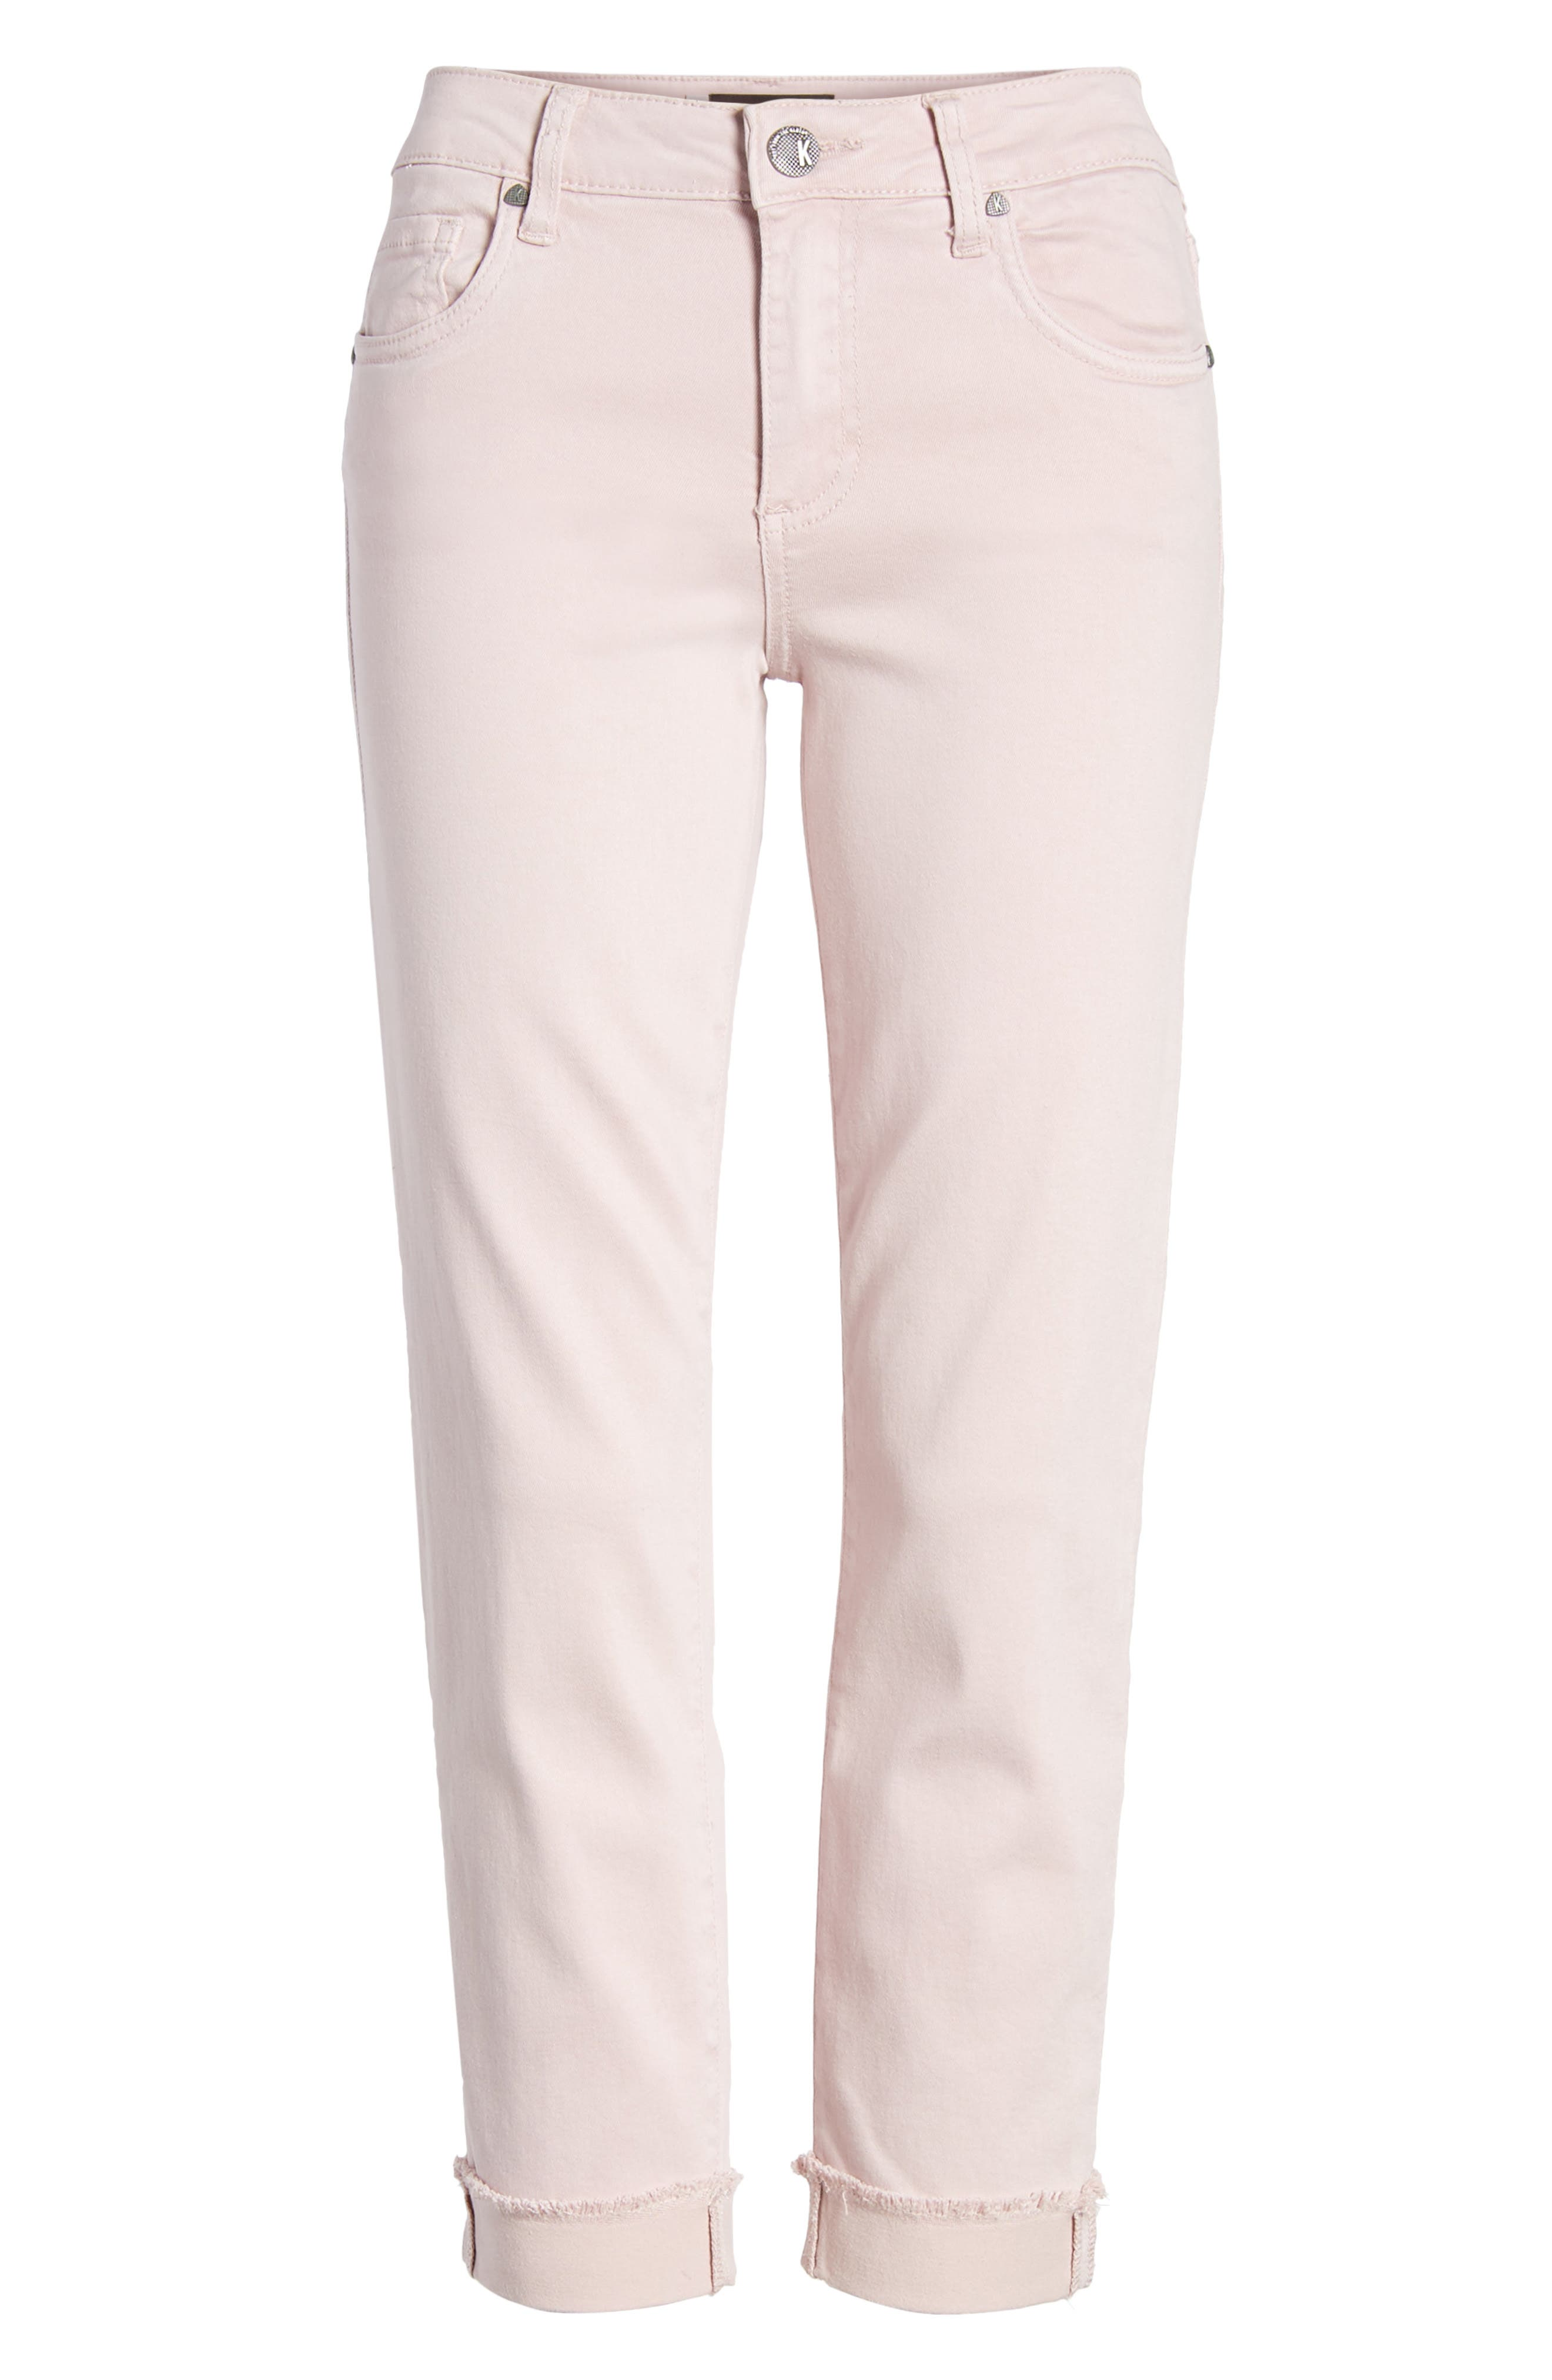 KUT from the Kloth Amy Crop Skinny Jeans,                             Alternate thumbnail 7, color,                             682